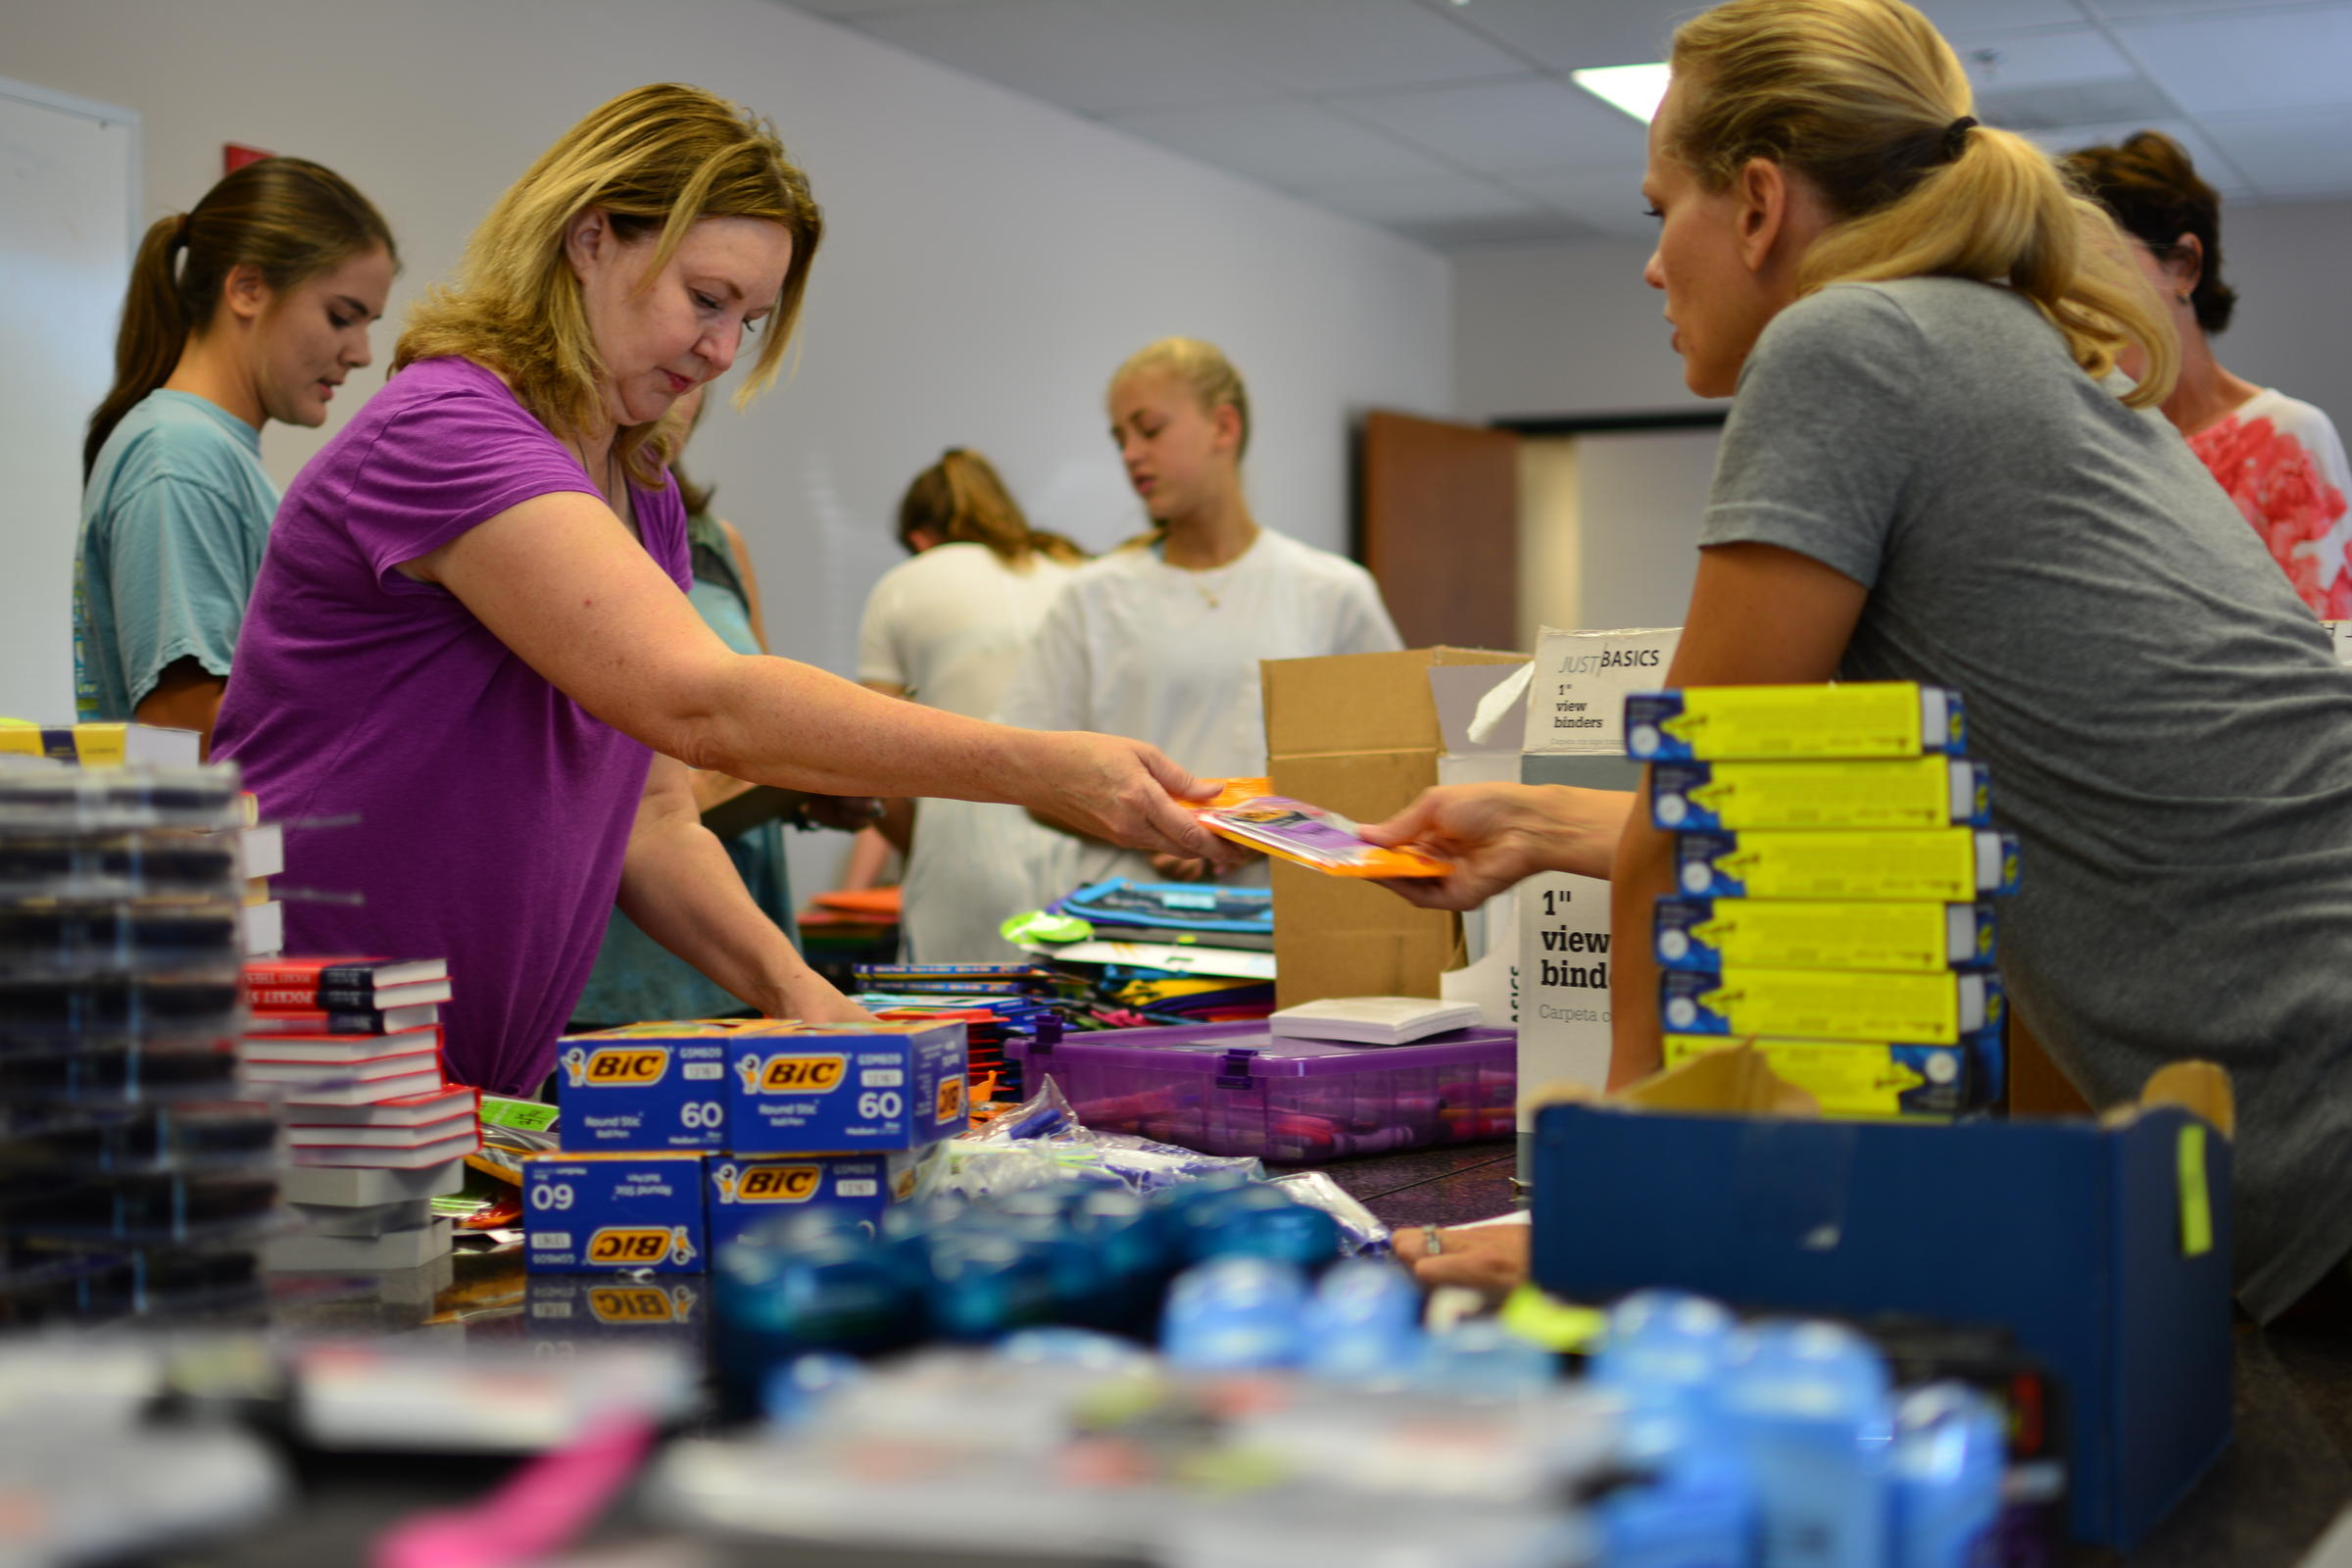 Program Hopes To Bring Back To School Supplies Normalcy